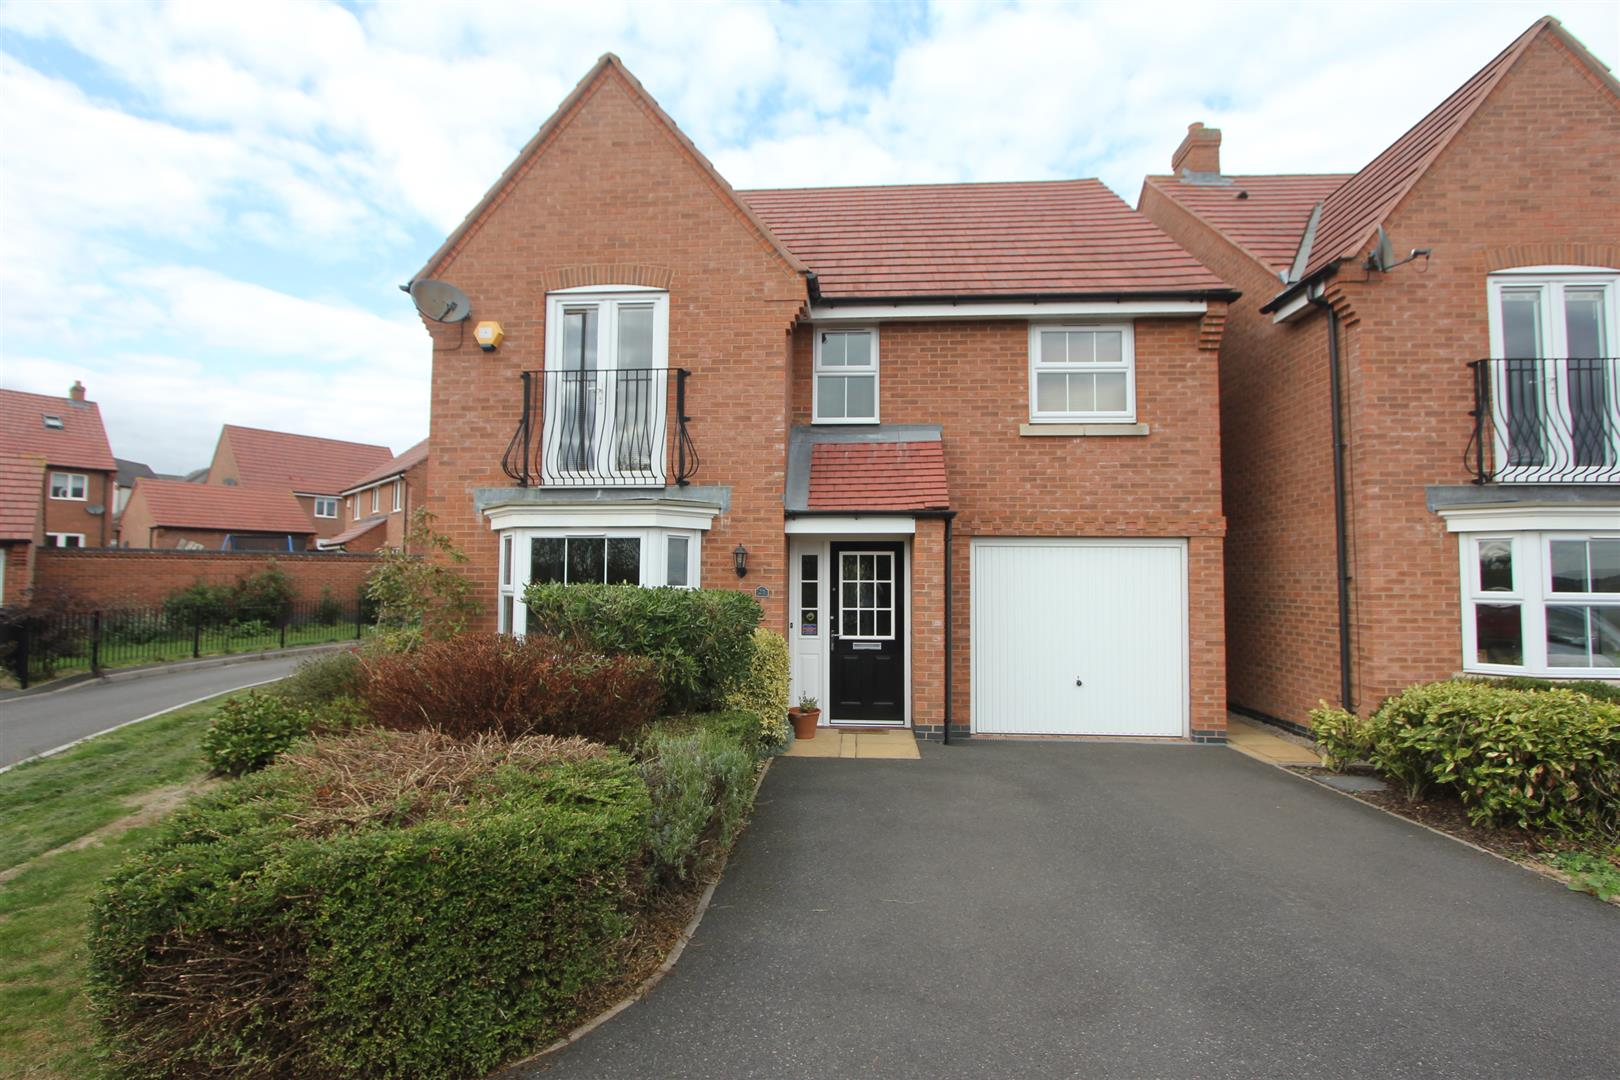 Columbus Lane Earl Shilton For Sale Scrivins X Y G Wiring Offers Over 250000 4 Bed Detached House In